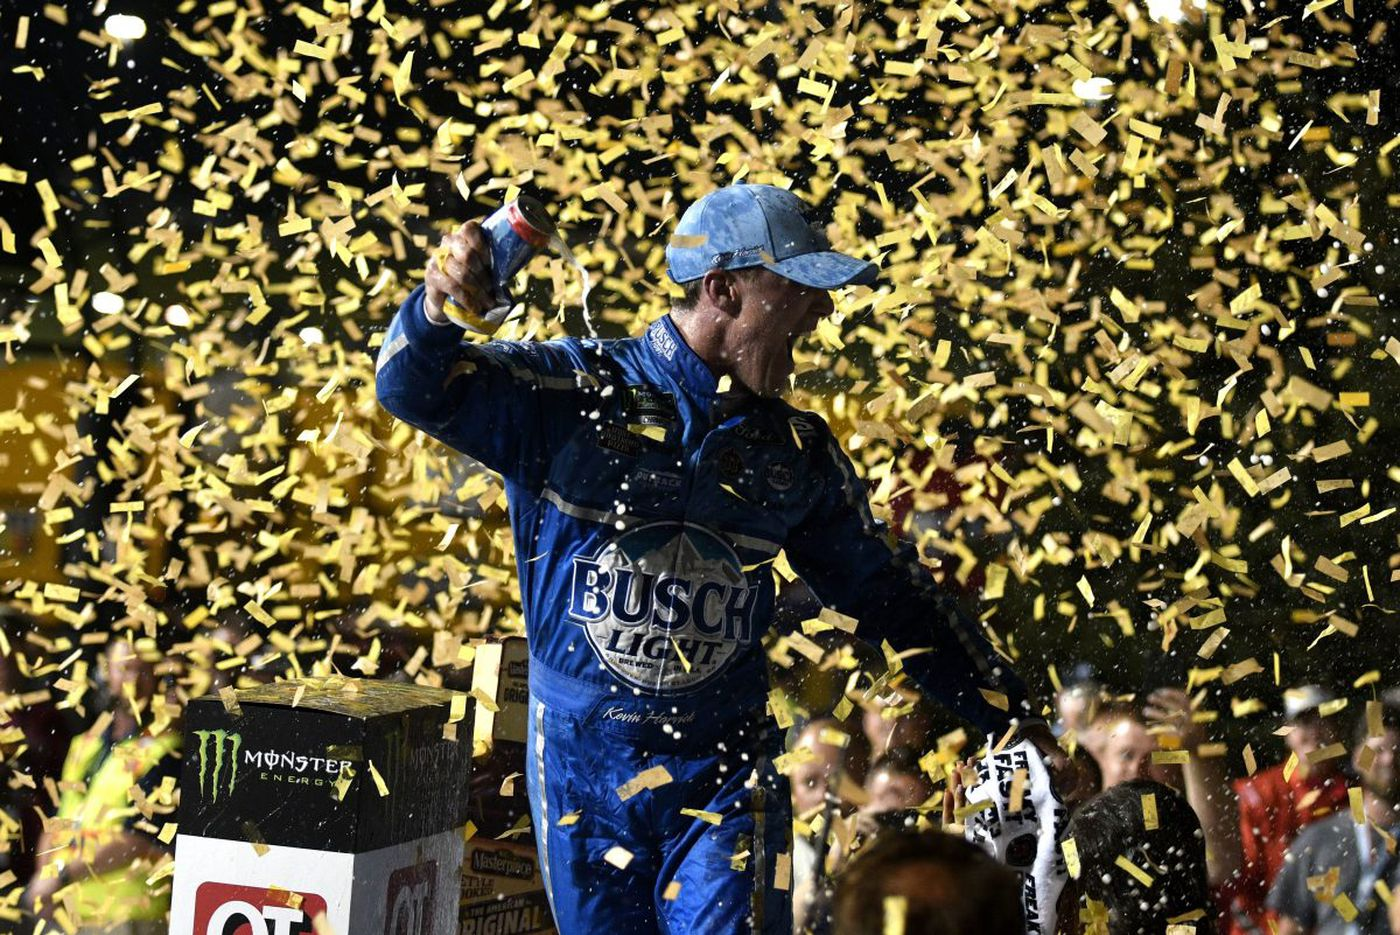 Kevin Harvick, Kyle Busch have dominated, but NASCAR Cup season far from over